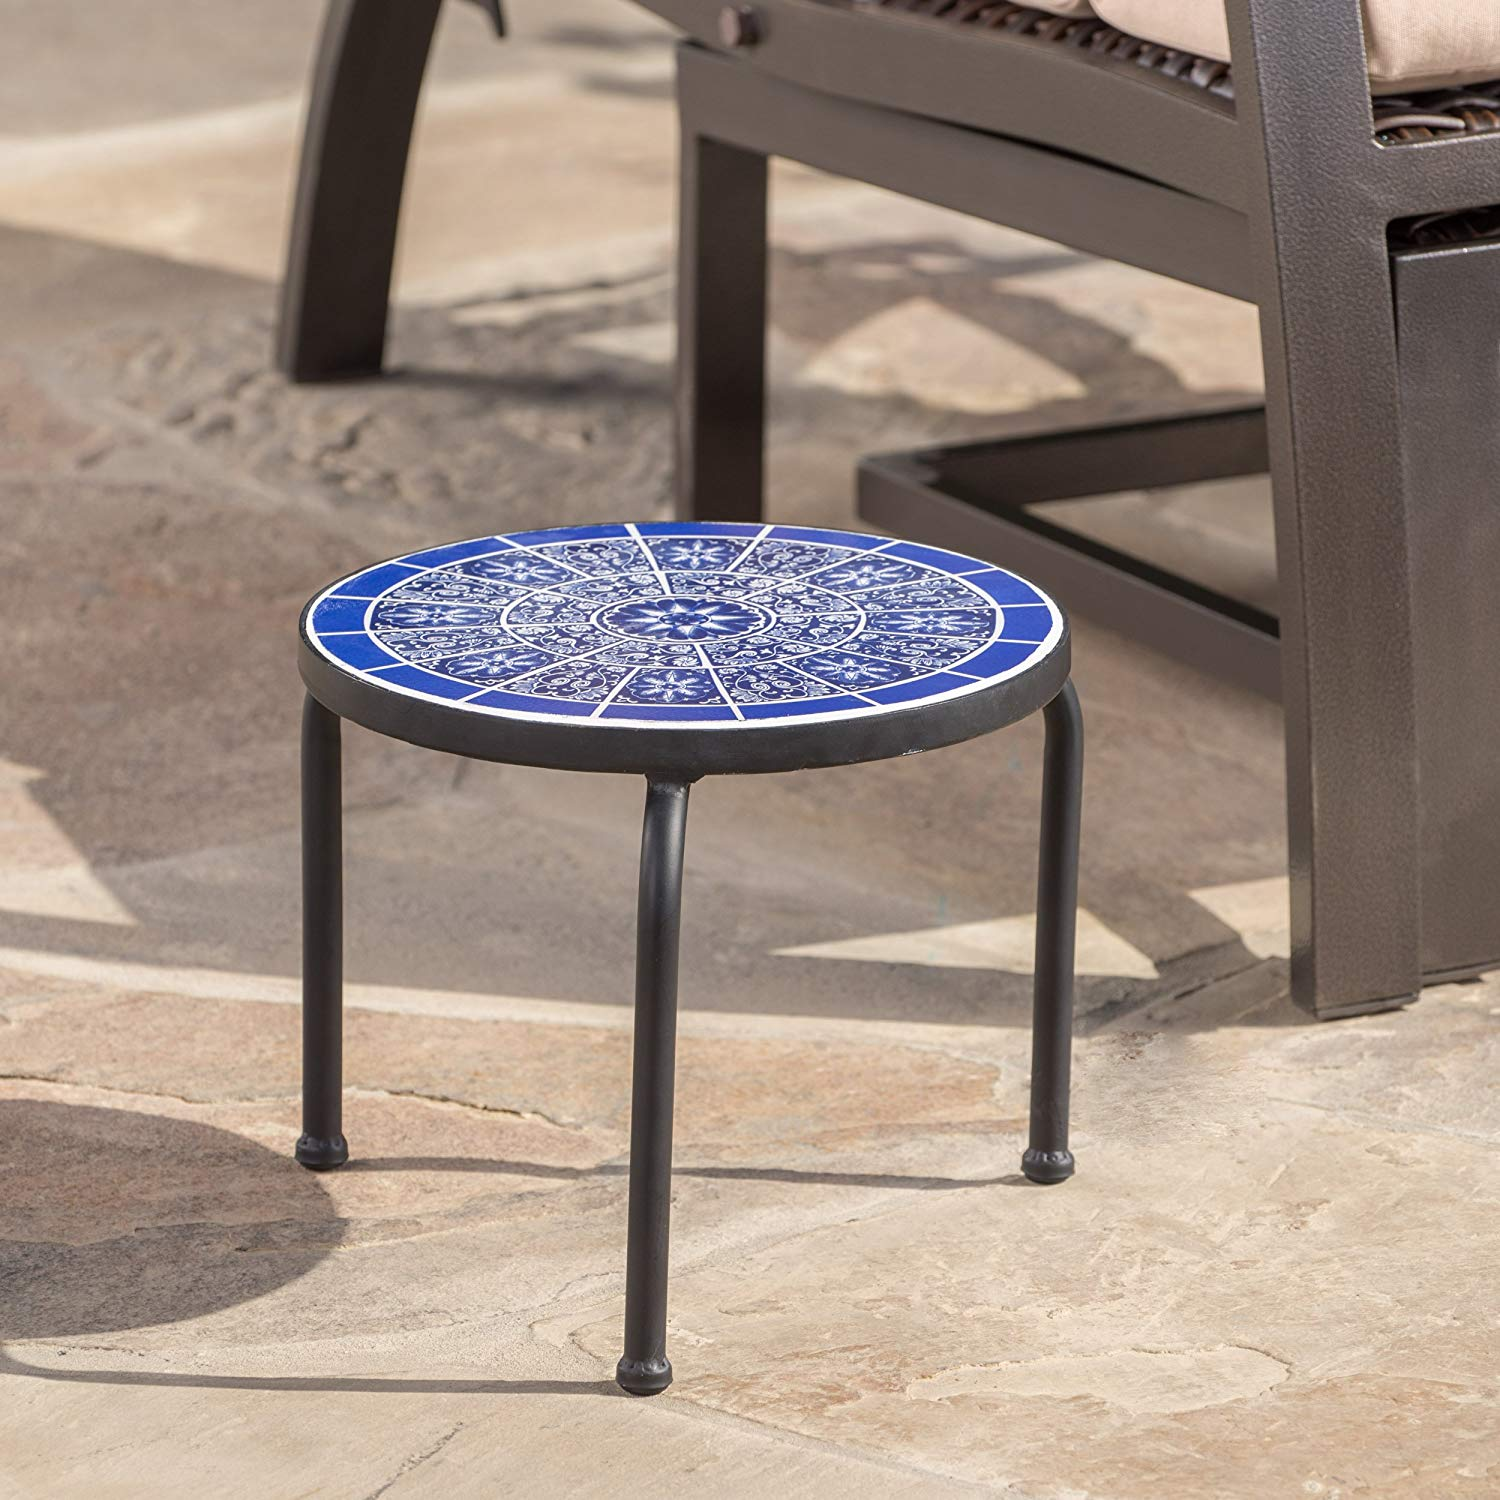 soleil outdoor blue white ceramic iron frame tile accent table side garden rose gold furniture red and oriental lamps tessa rustic small mirrored butcher block countertop black